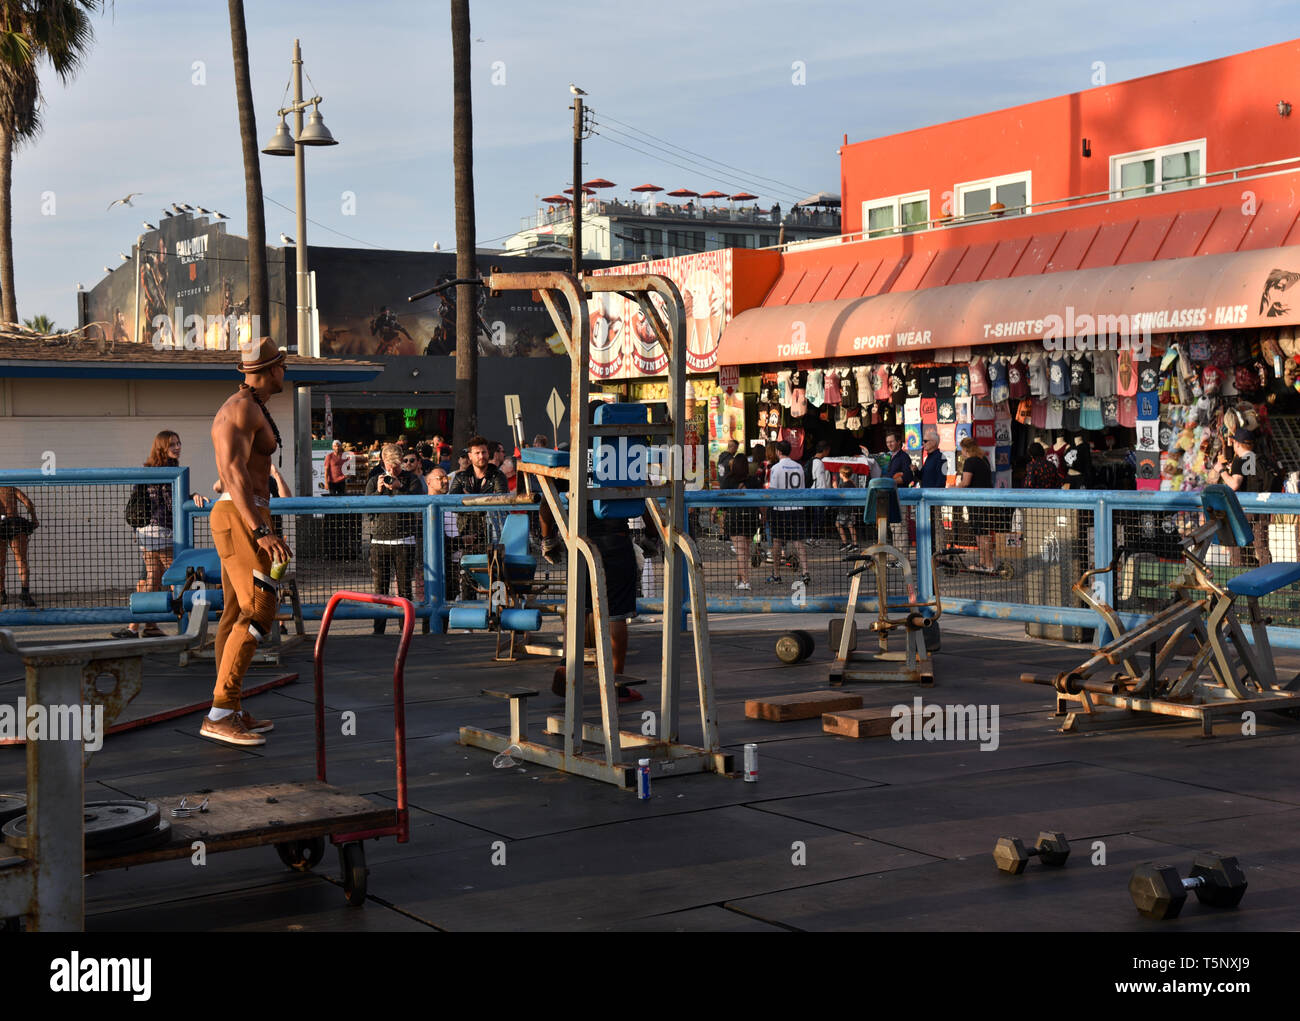 LOS ANGELES, CA/USA  - November 17, 2019: Bodybuilders and tourists at the world famous Muscle Beach in Venice California - Stock Image